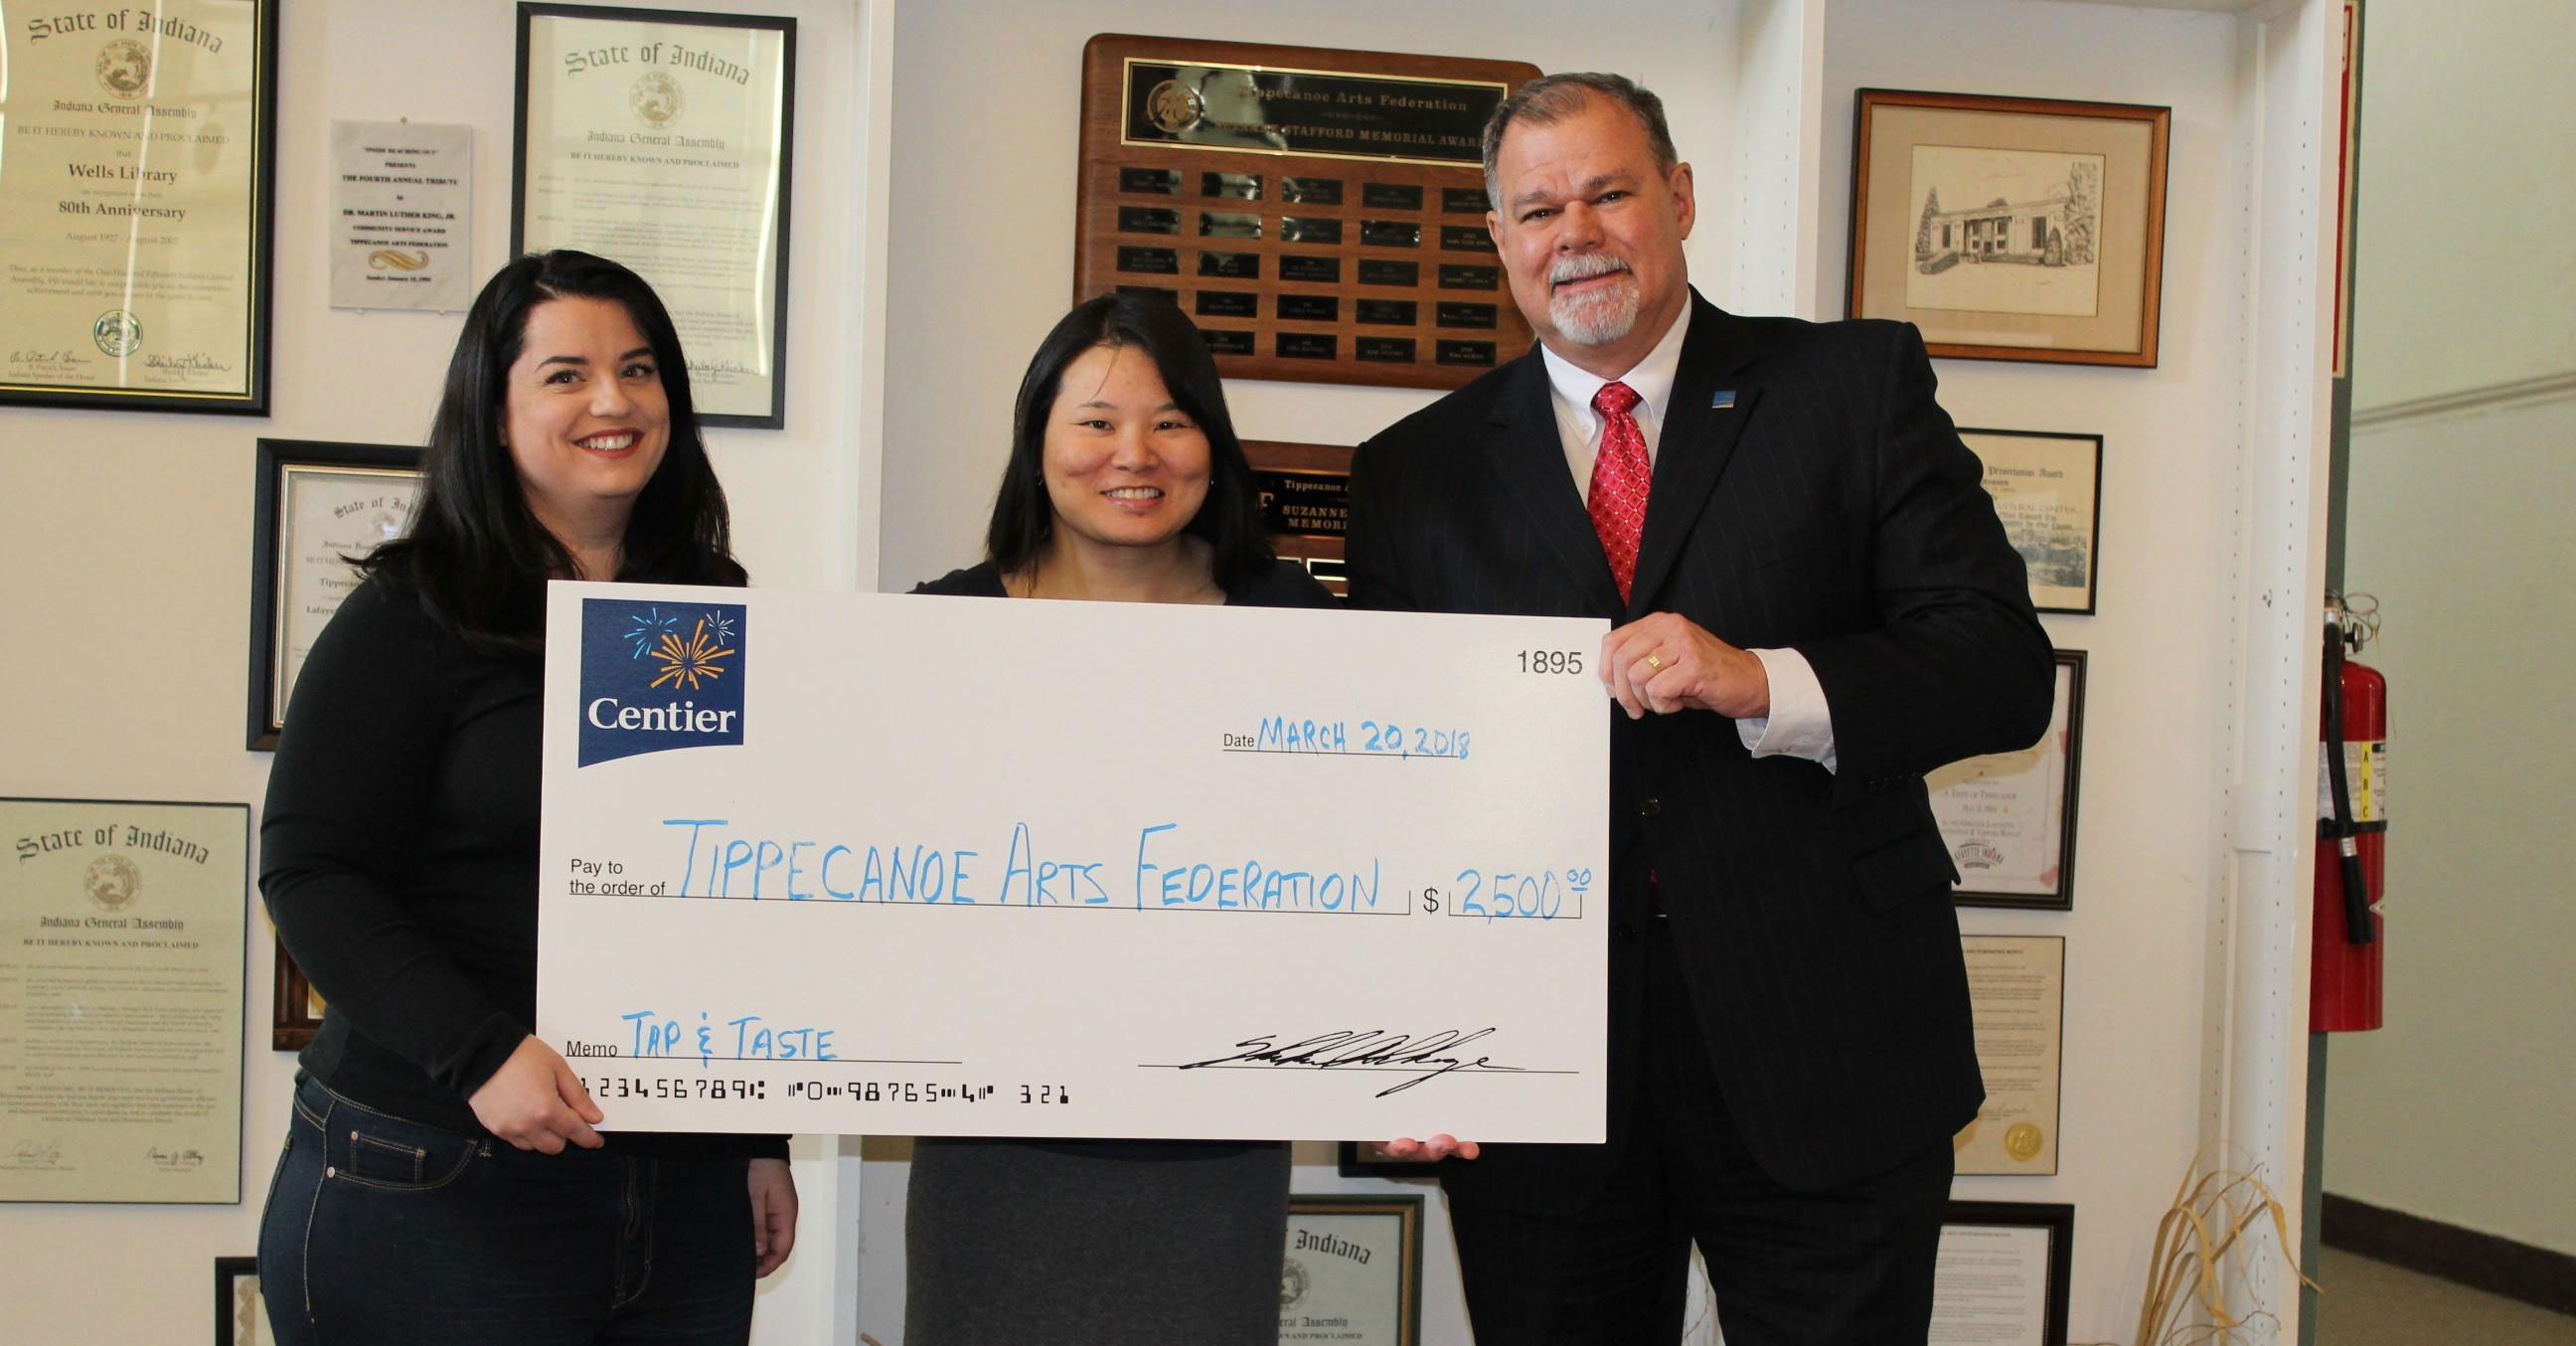 Centier Bank Supports Tippecanoe Arts Federation